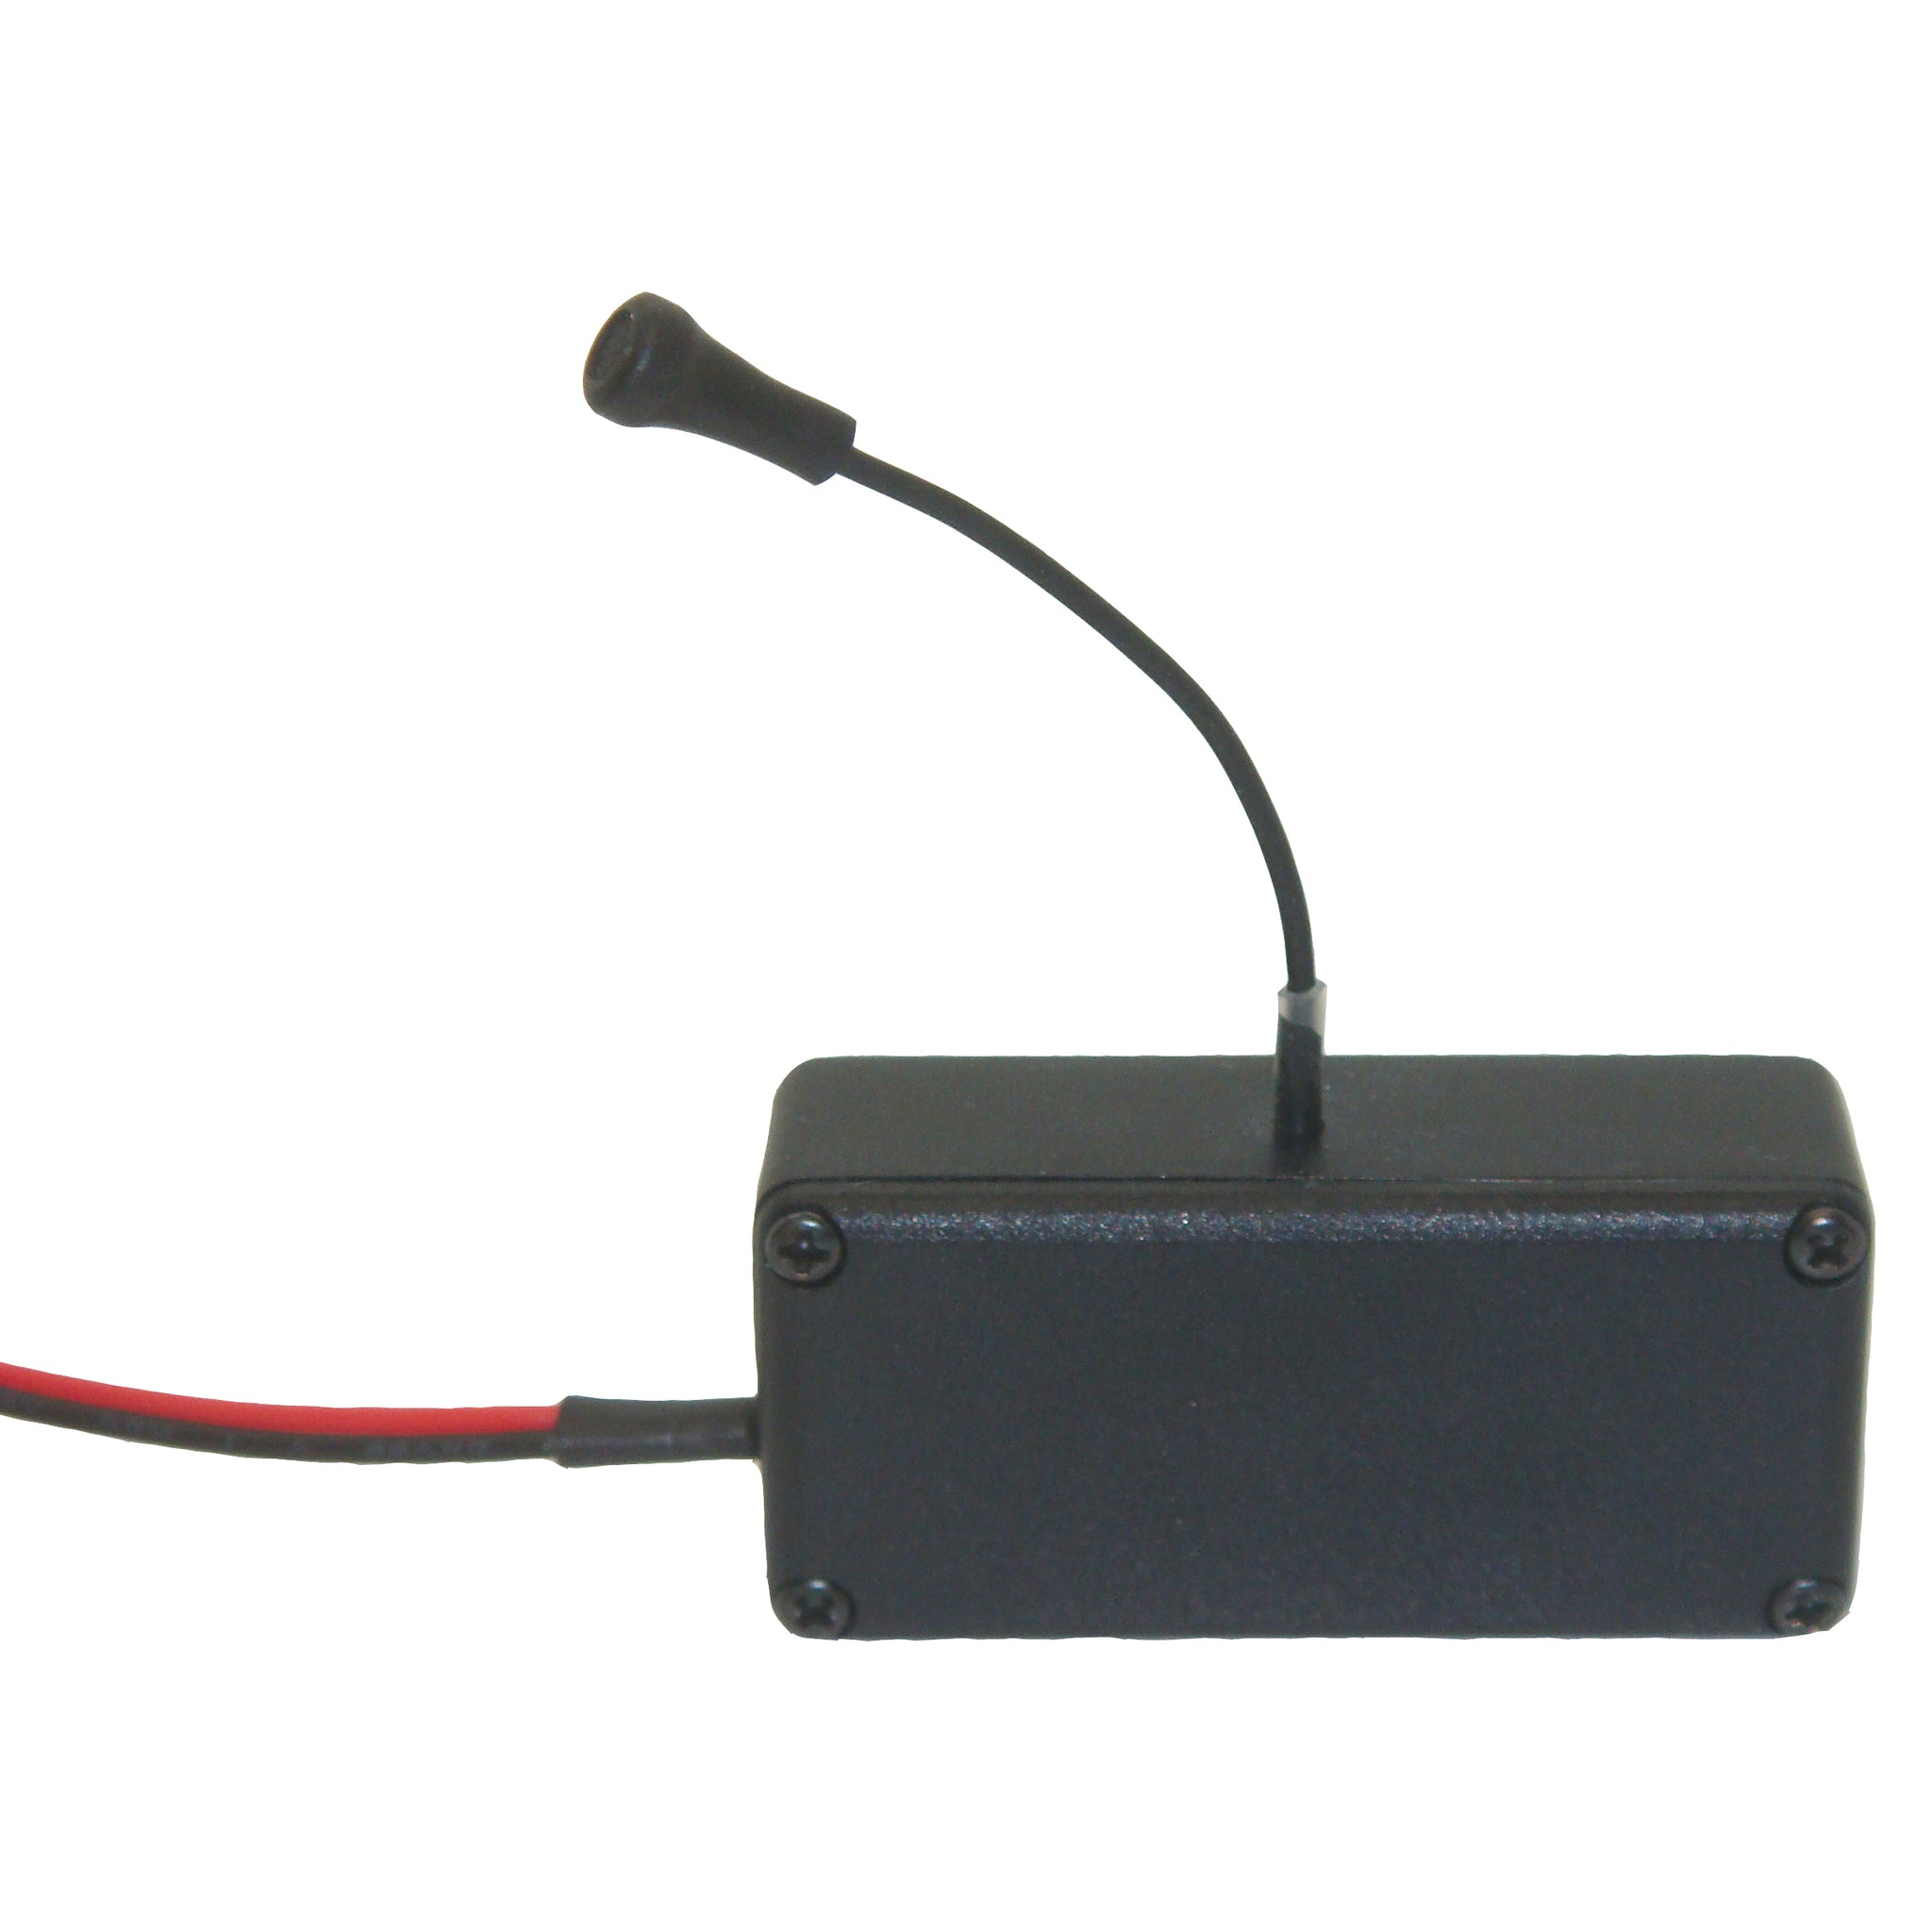 Spy Wall Charger Voice Activated GSM GPS Tracker Audio Ear Bug Listens Device EE